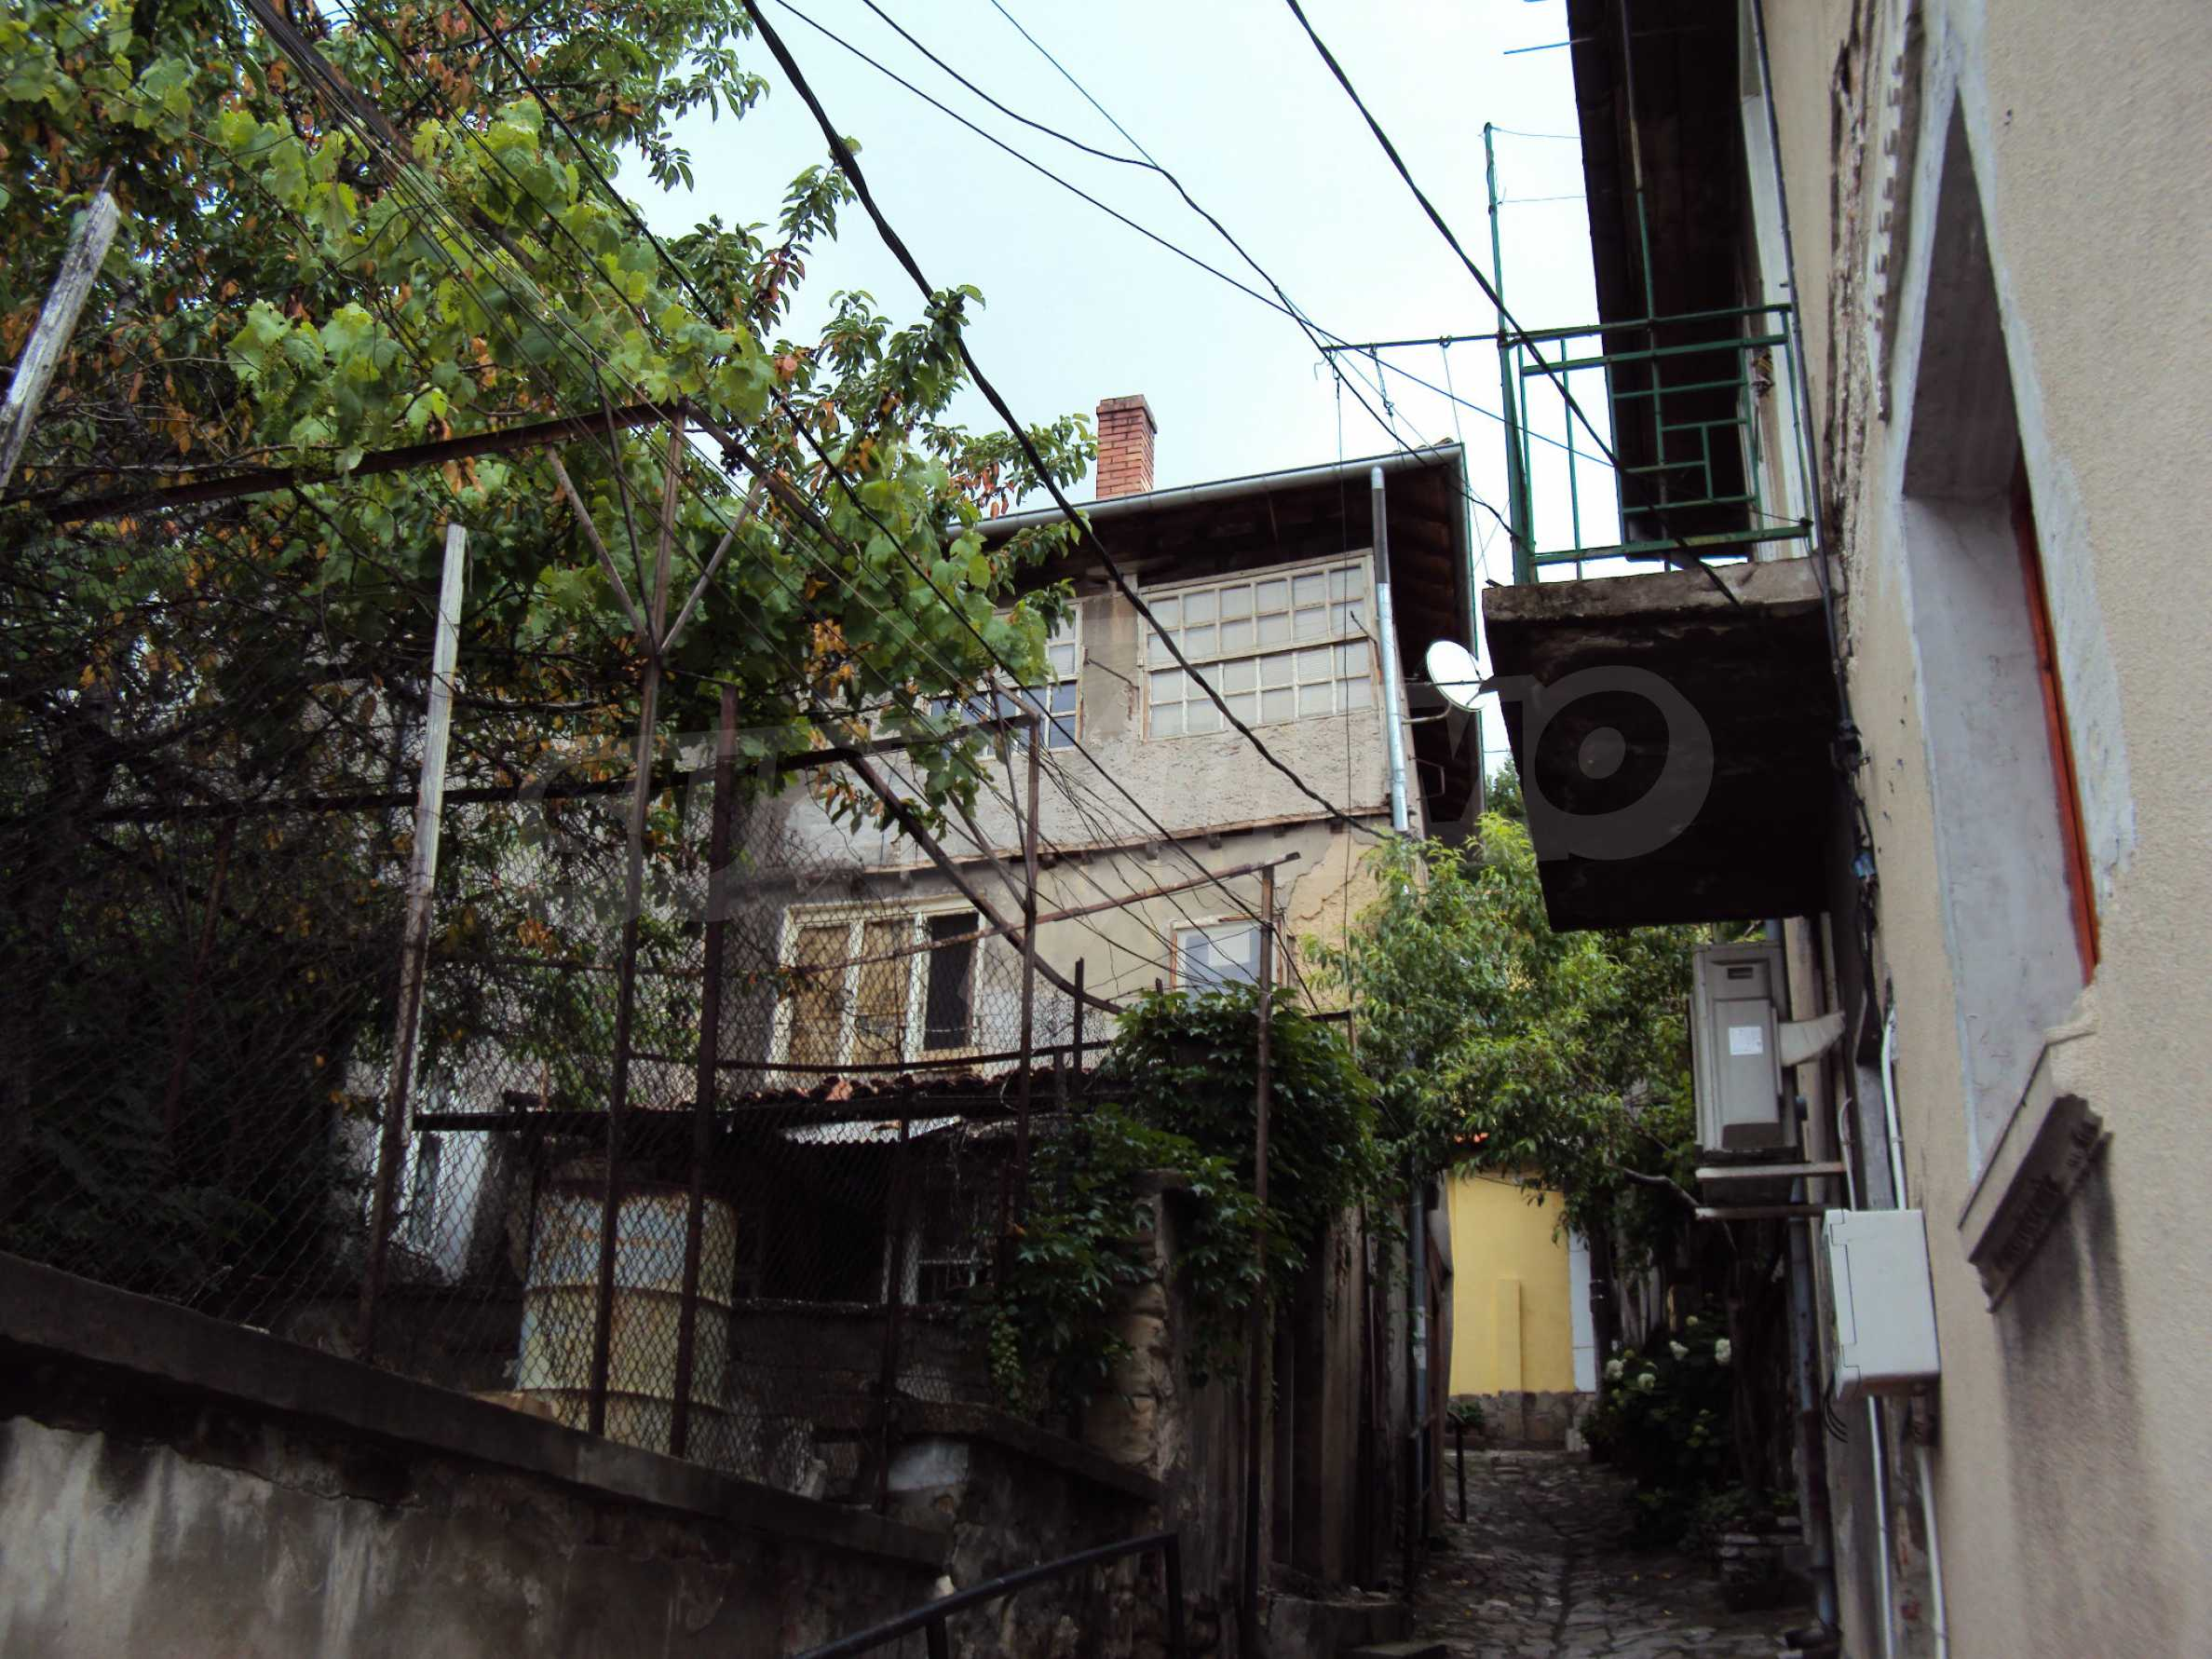 Traditional, spacious house located in the old part of Veliko Tarnovo 3